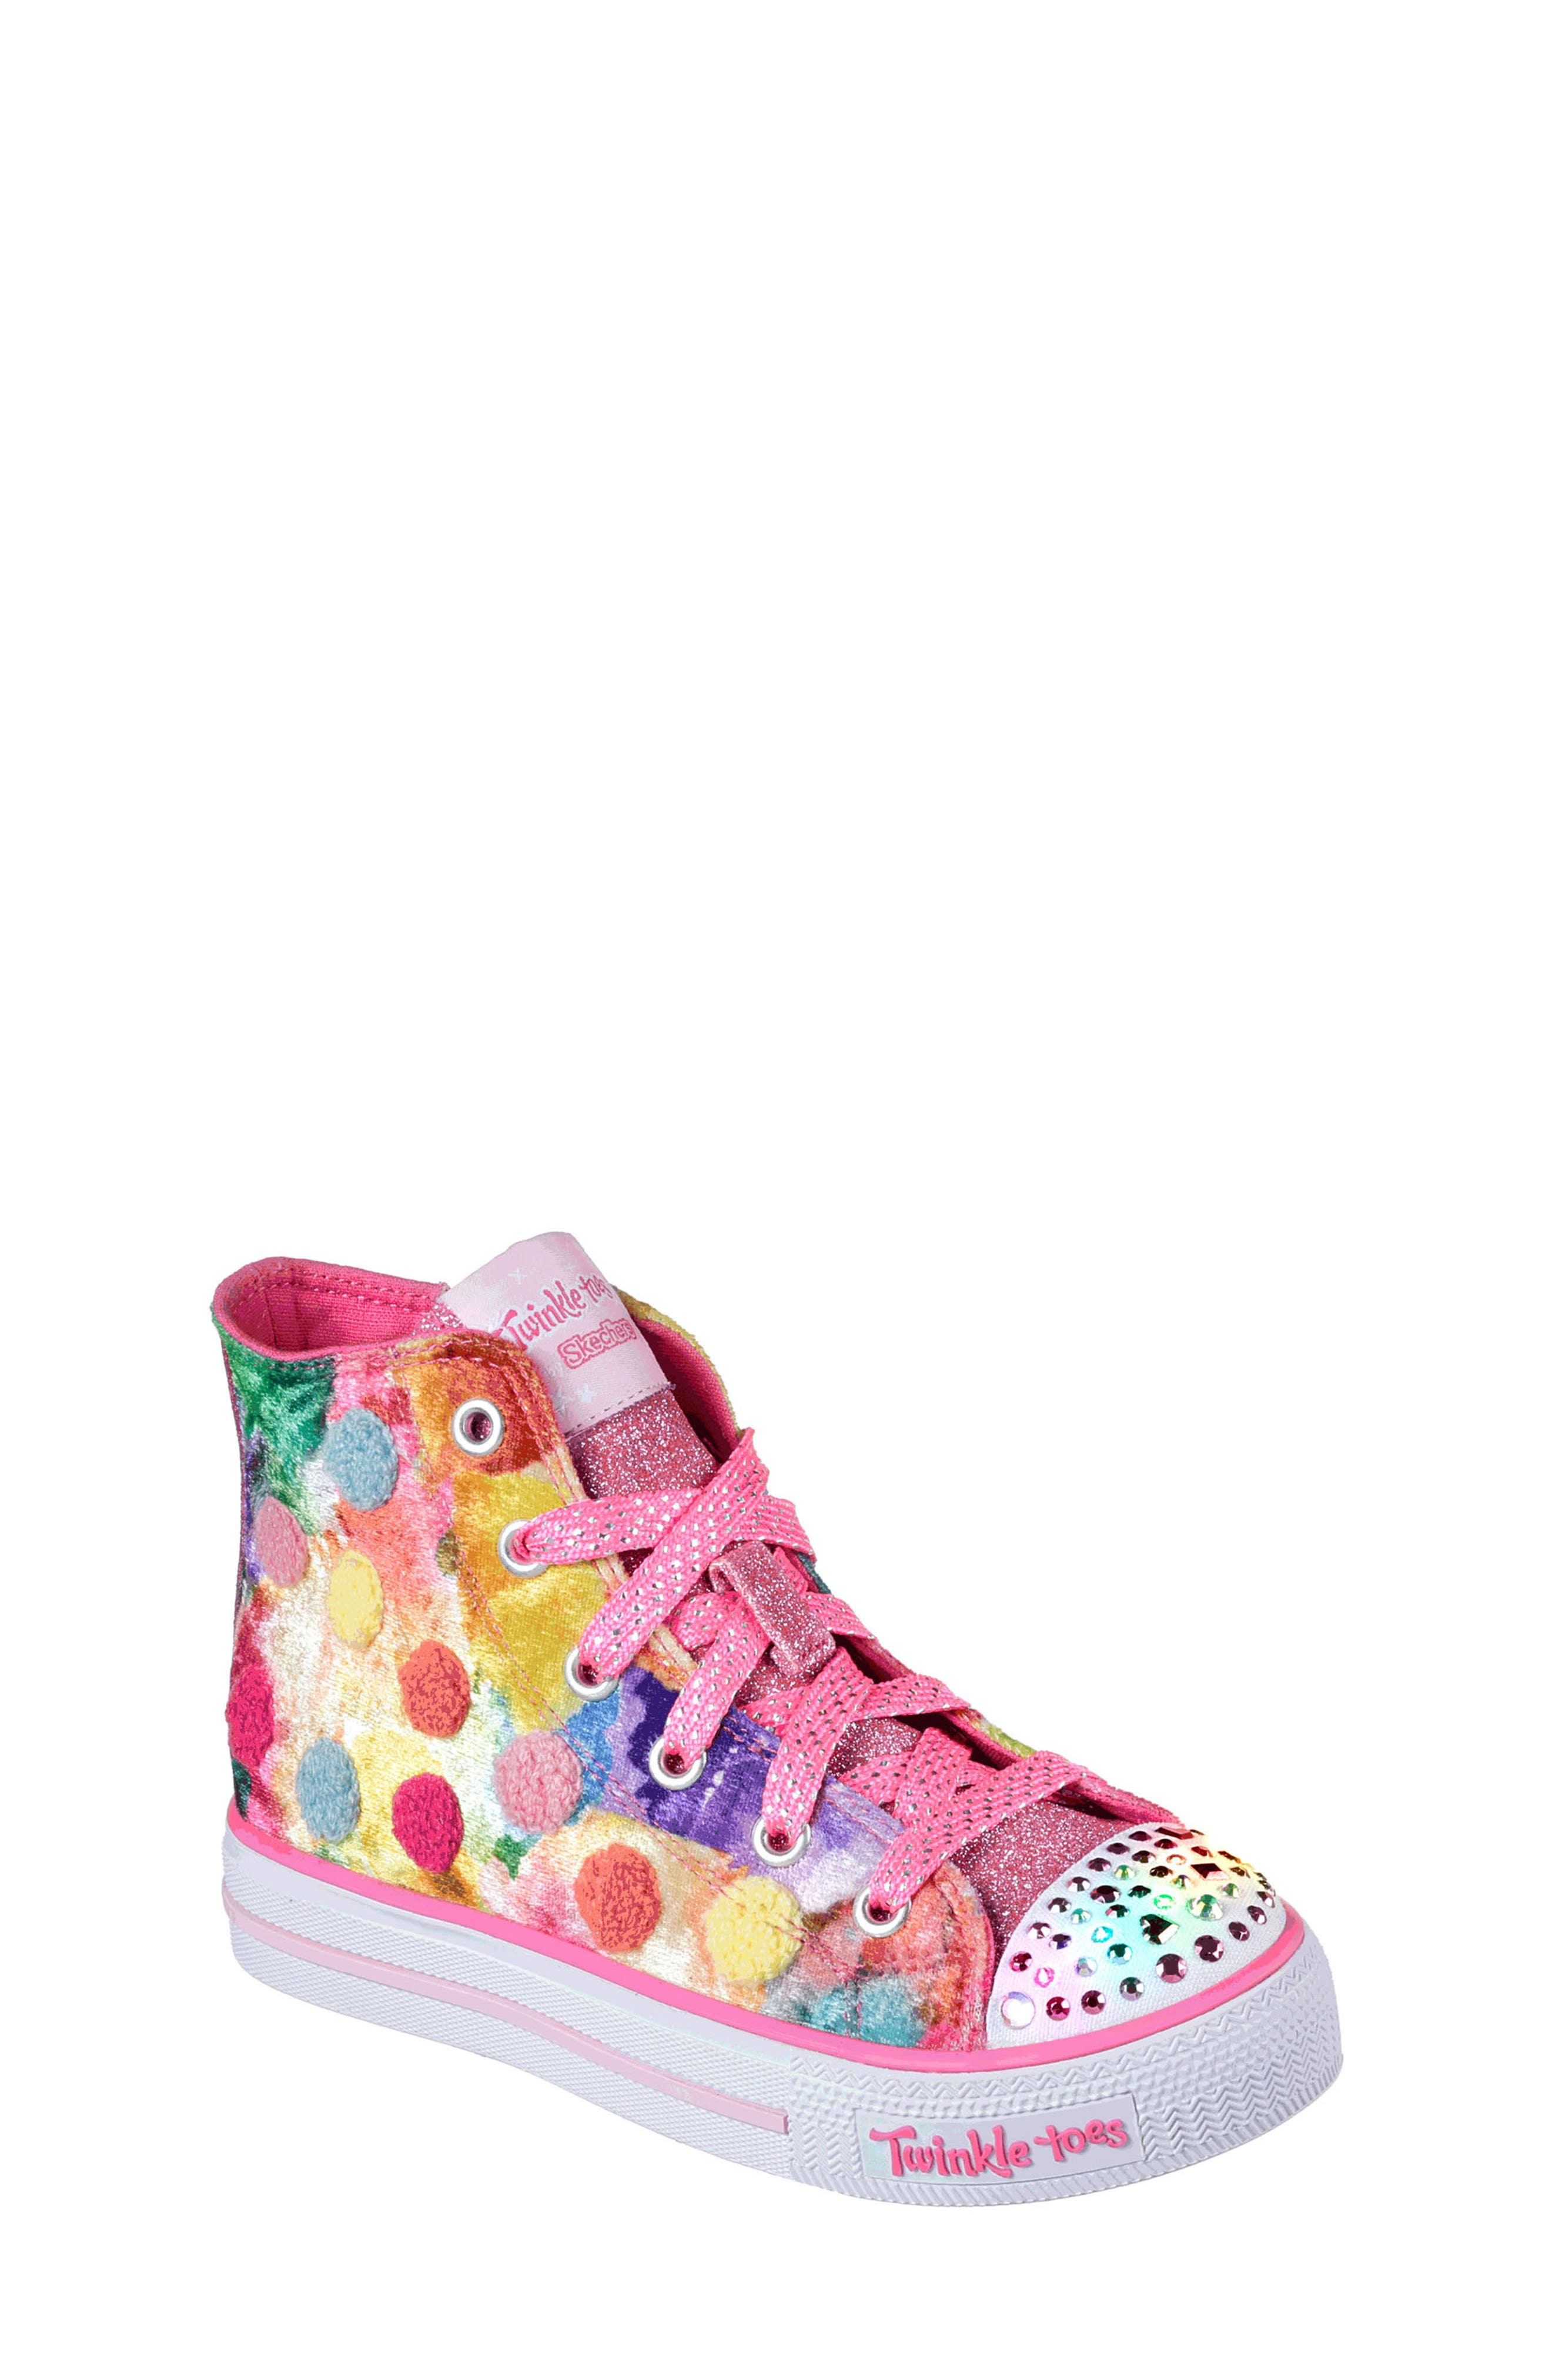 Twinkle Toes Shuffles Light-Up High Top Sneaker,                             Main thumbnail 1, color,                             Hot Pink/ Multi